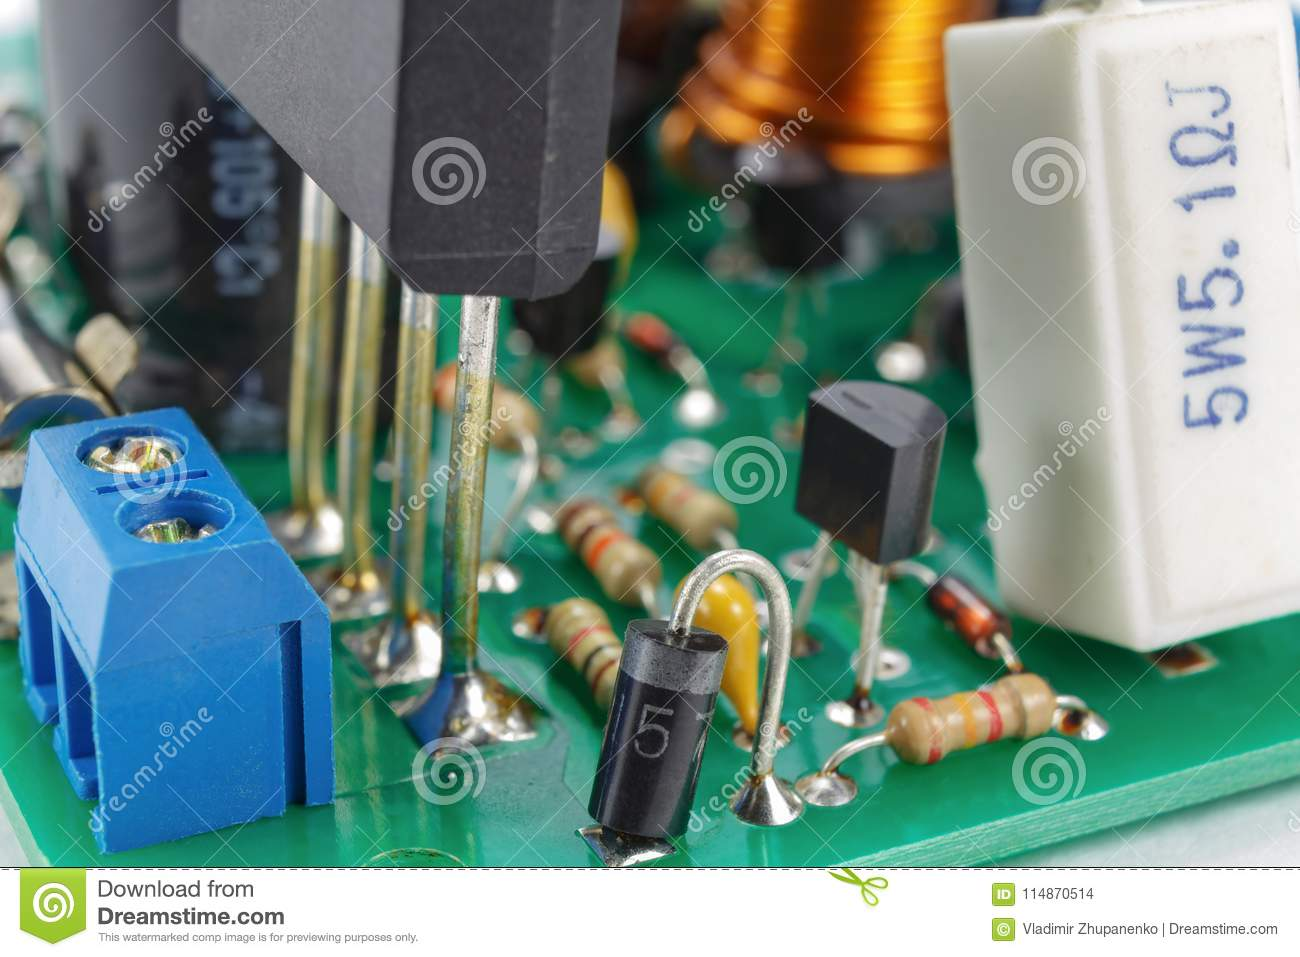 Printed Circuit Board With Installed Analogue Electronic Components Stockfoto Pcb Used In Industrial Closeup